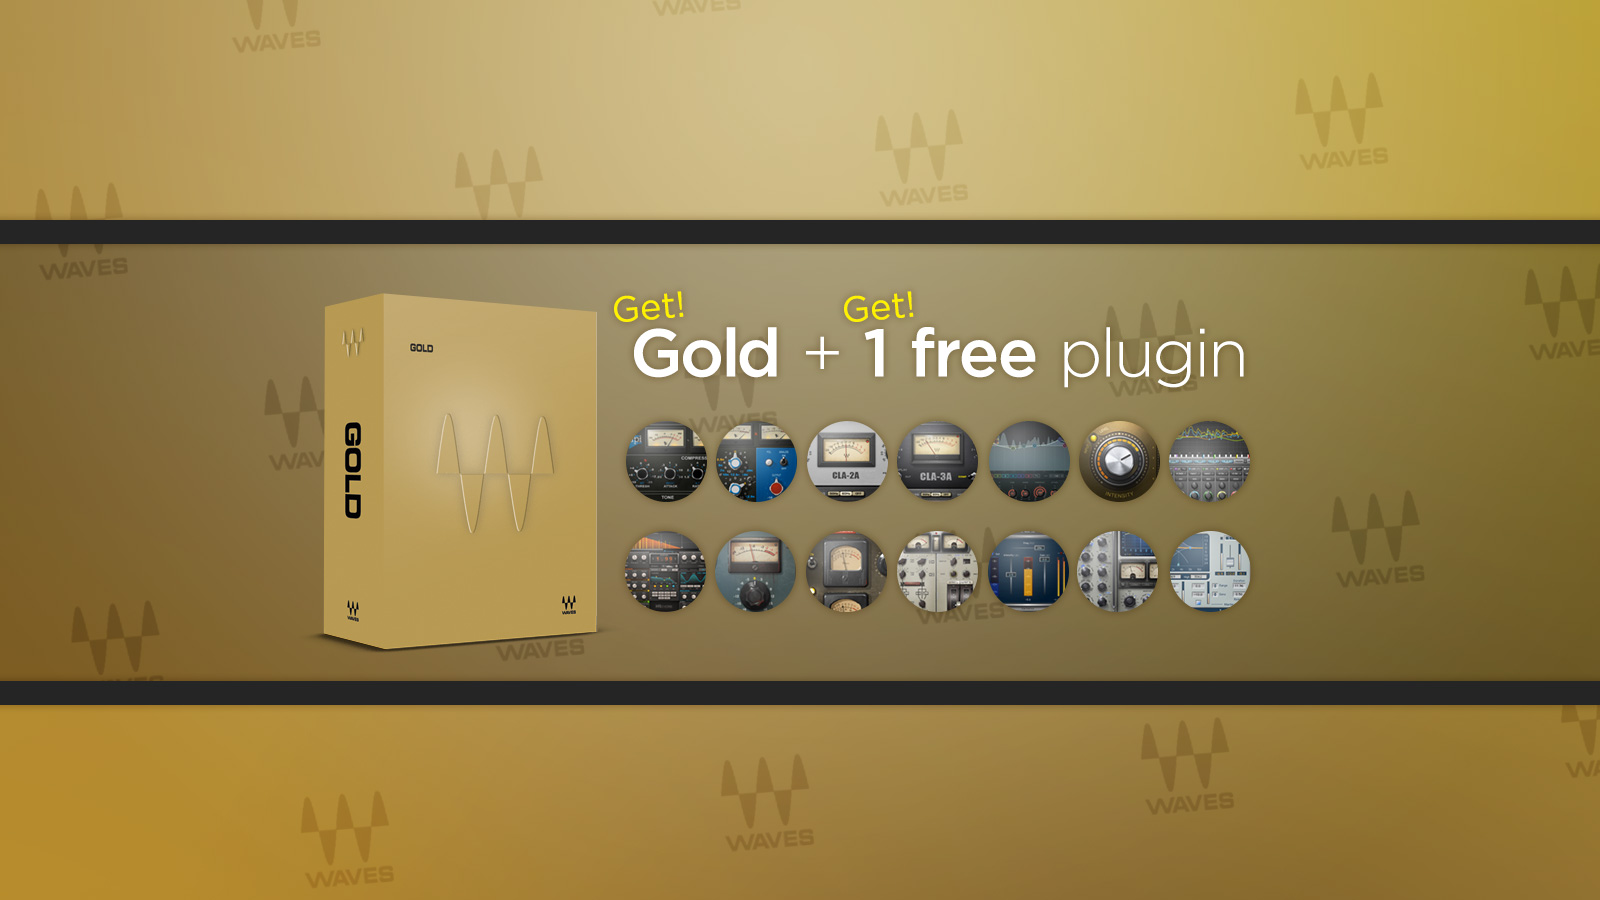 Buy Gold &#038; Get 1 Free Plug-in <br>日本限定プロモーション!